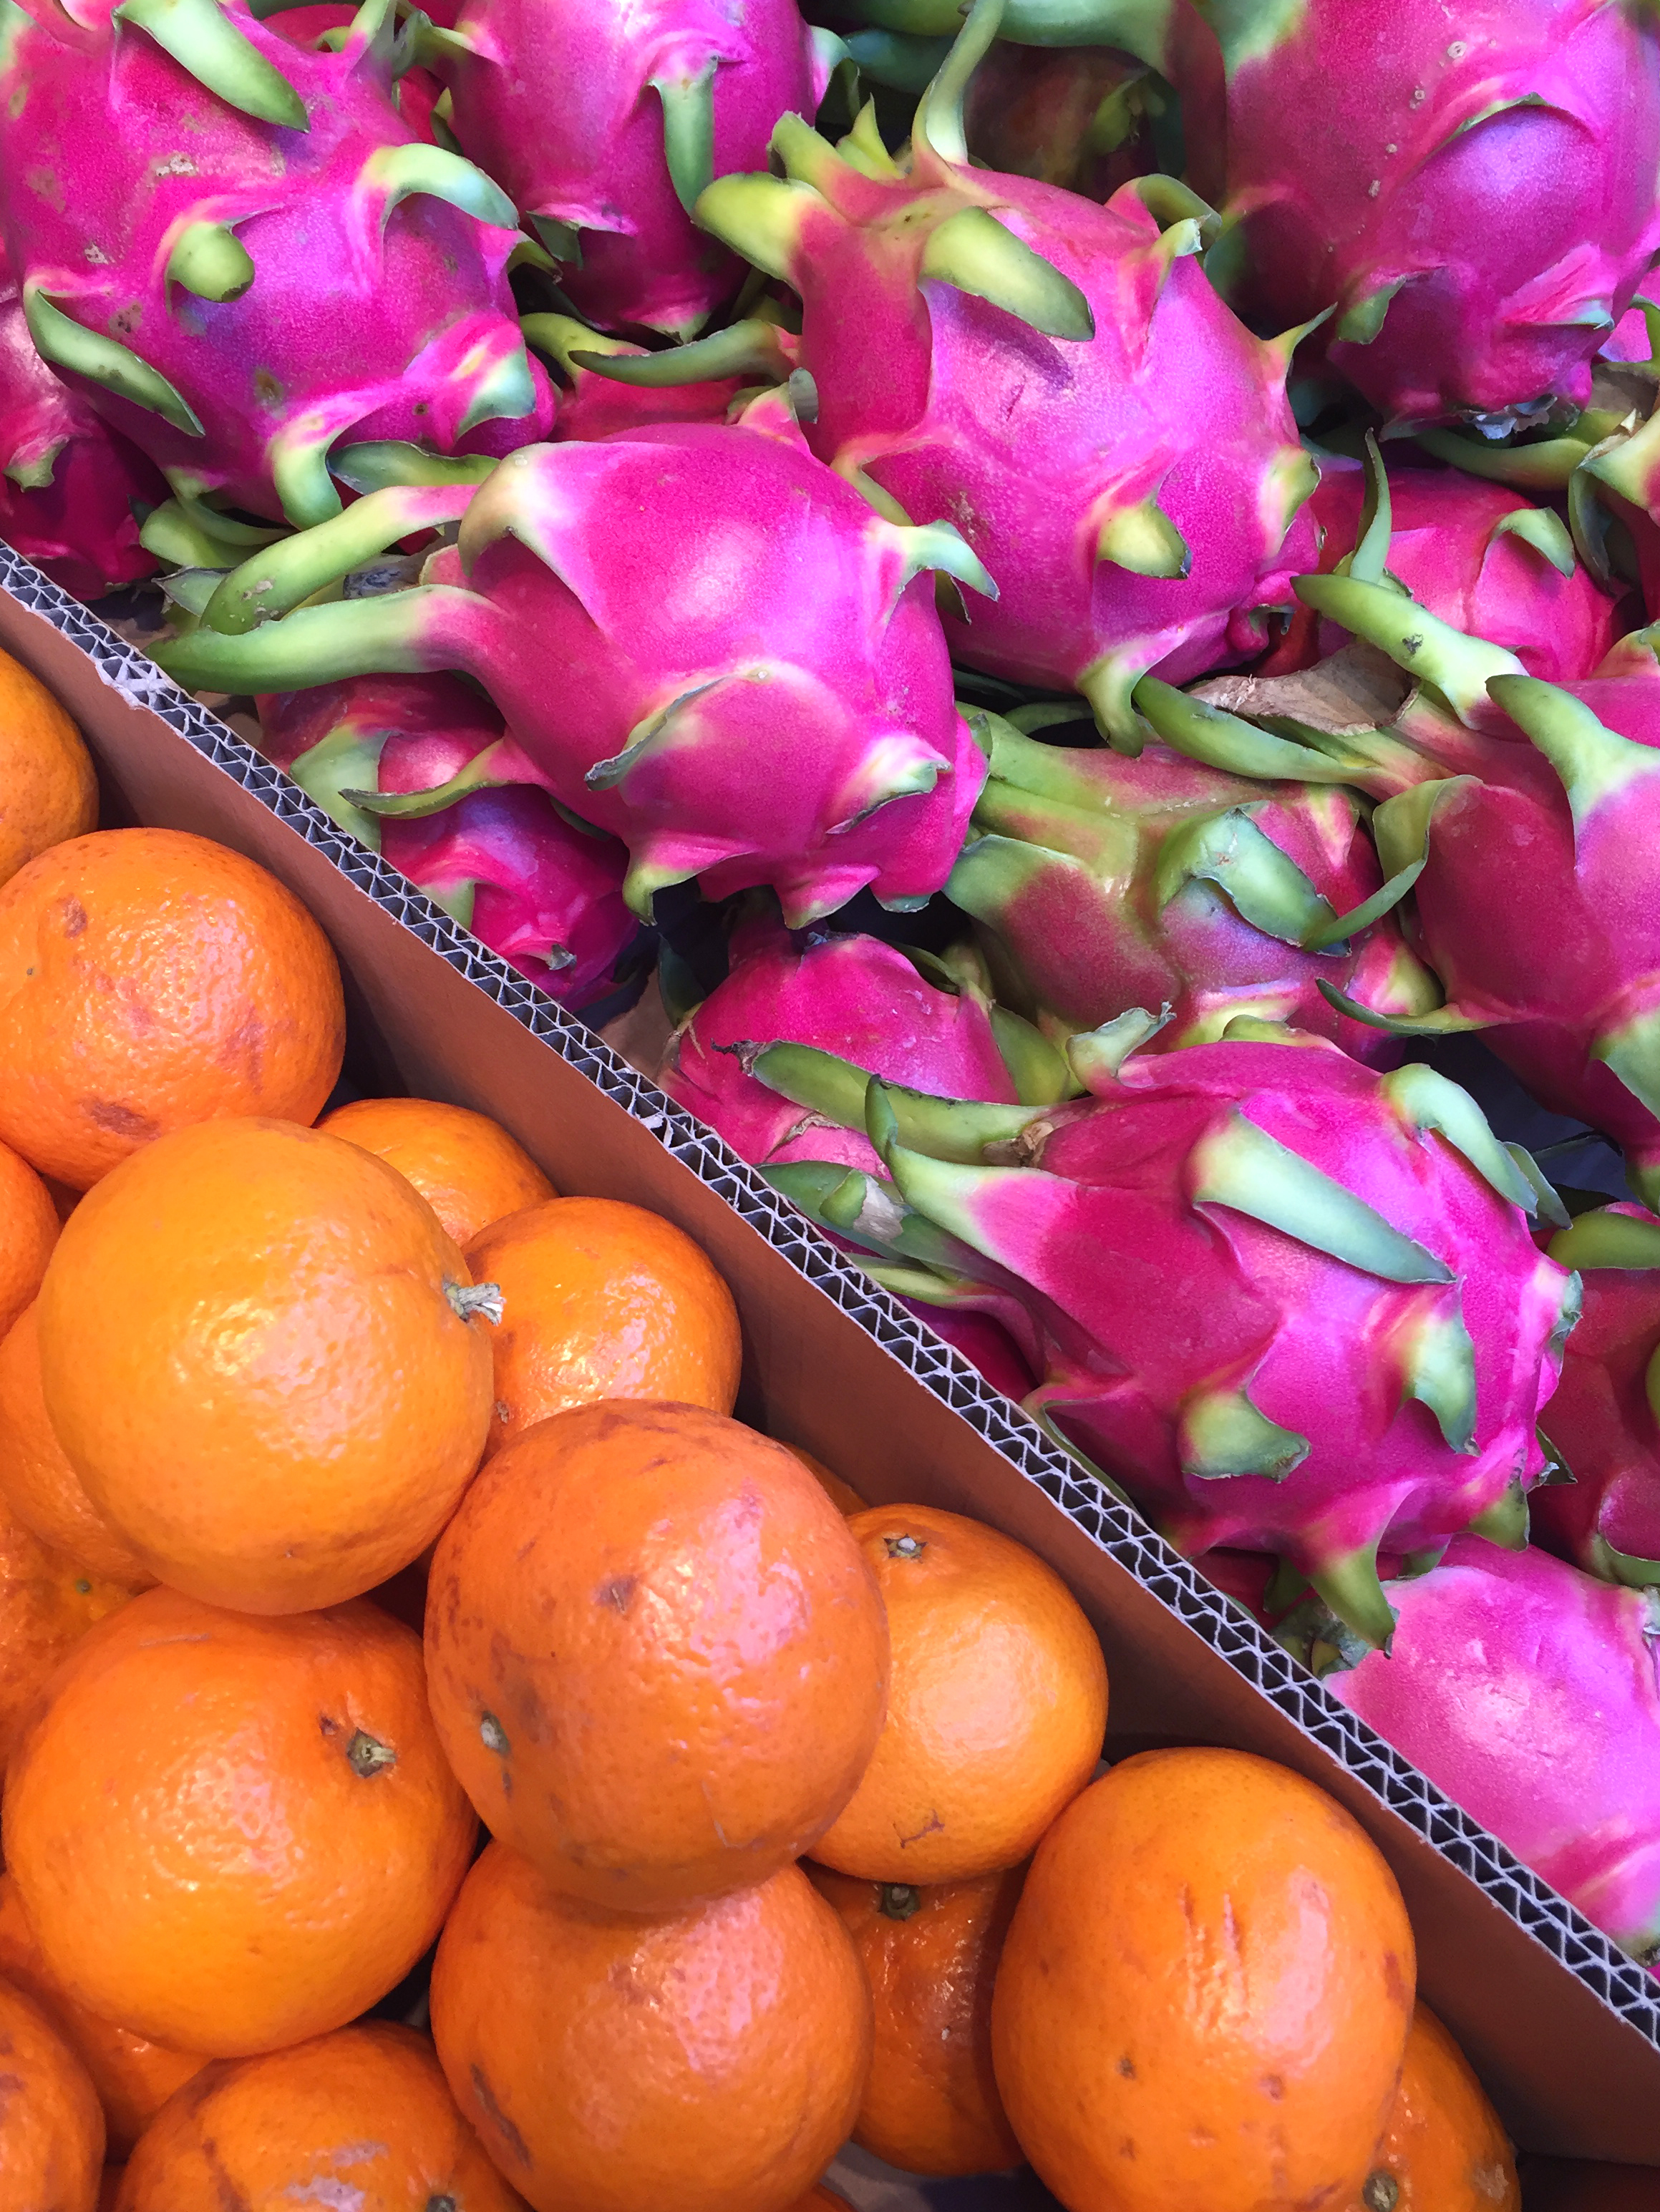 amy_chen_design_chinatown_nyc_food_guide_fruit.JPG